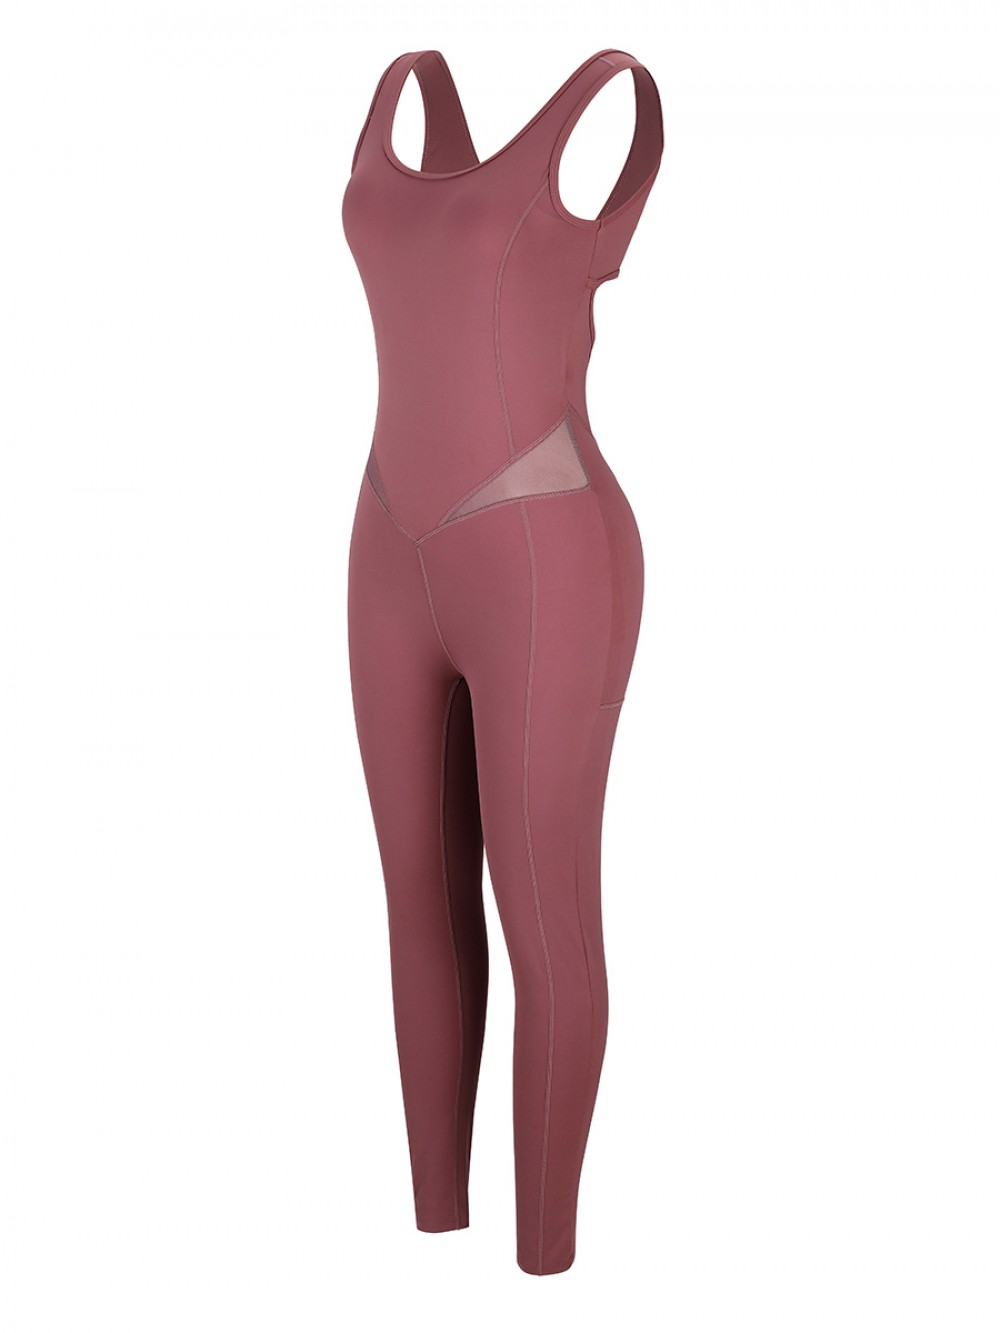 Purplish Red Hollow Out Hip Wrinkle Yoga Jumpsuit Nice Quality